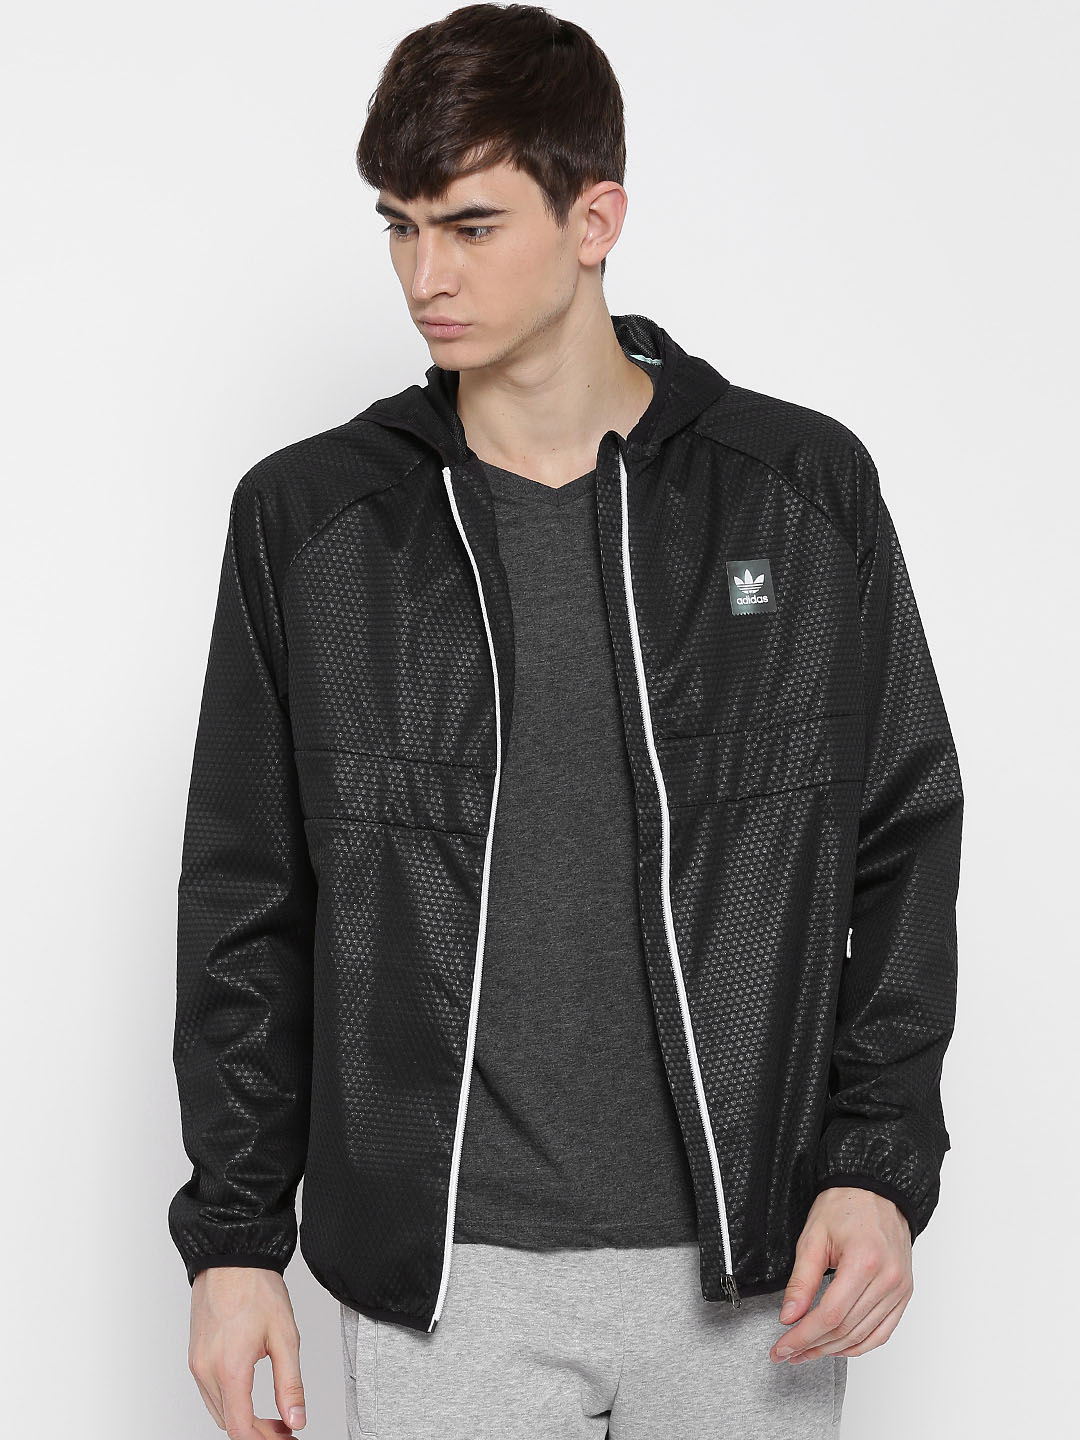 92d41409cd6e Adidas Jacket - Buy Adidas Jackets for Men